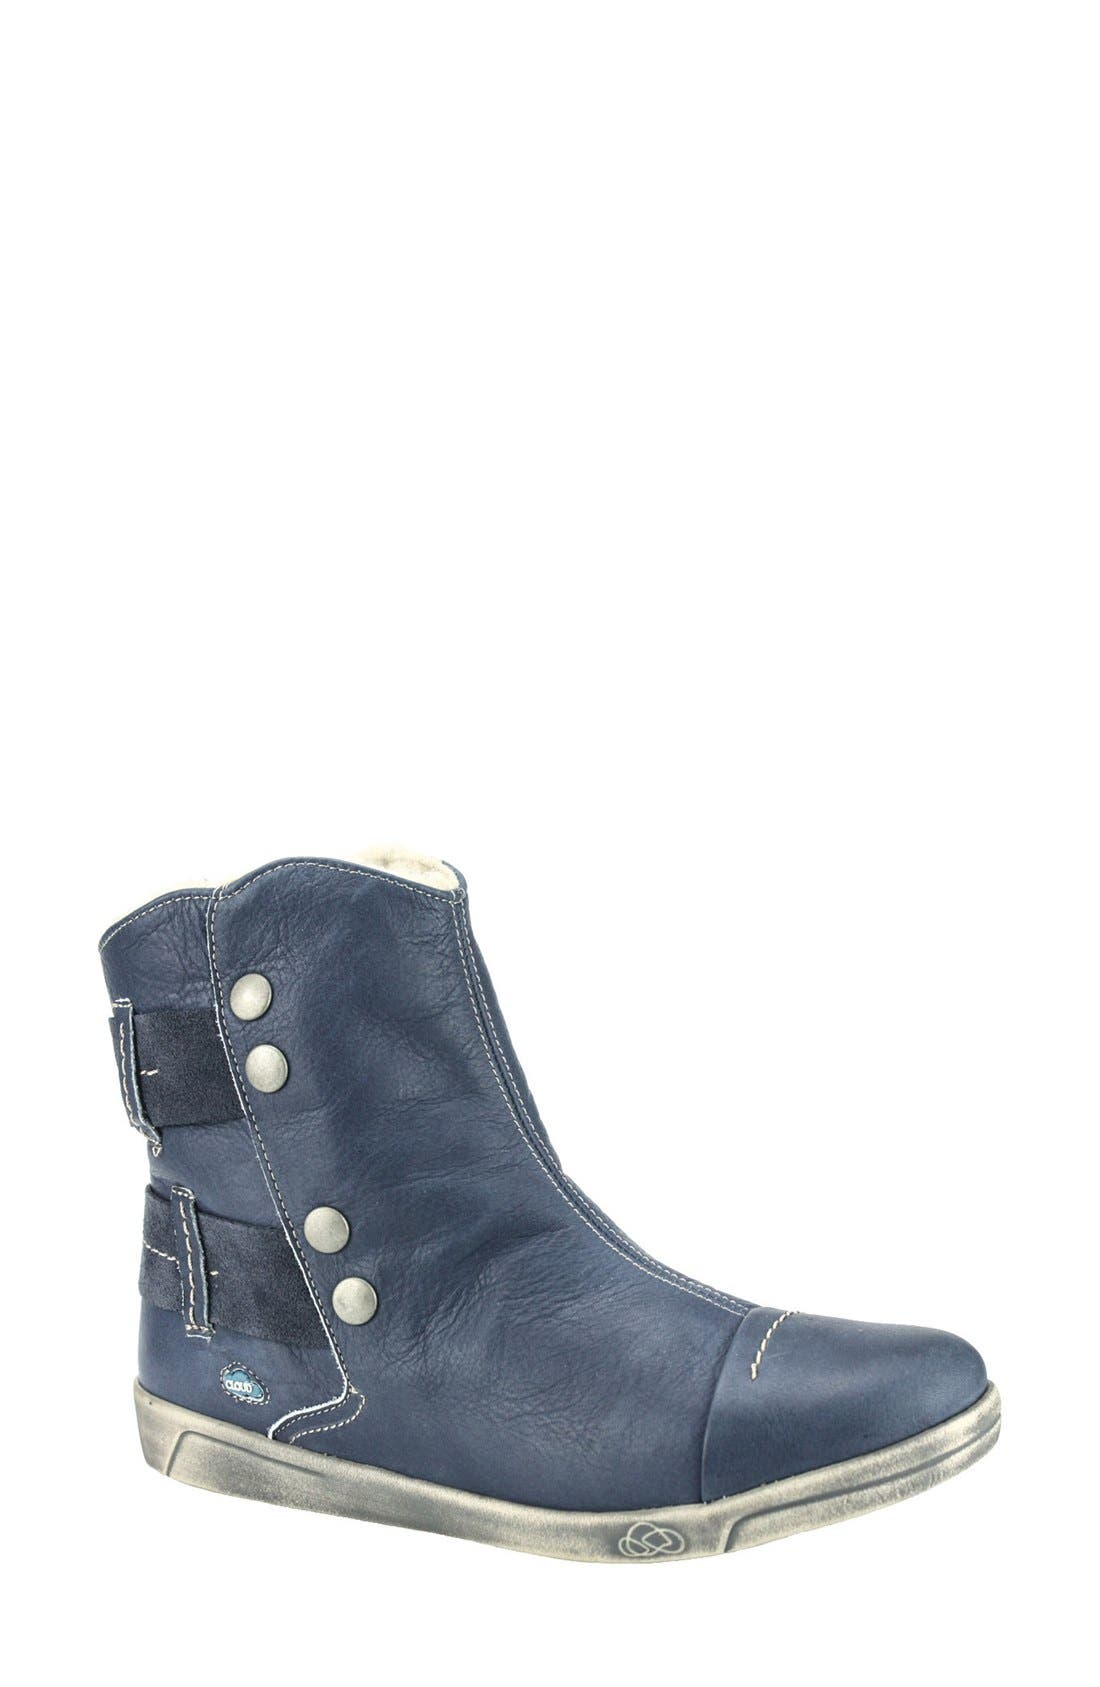 Cloud Aline Fantasy Shearling Lined Boot, Blue